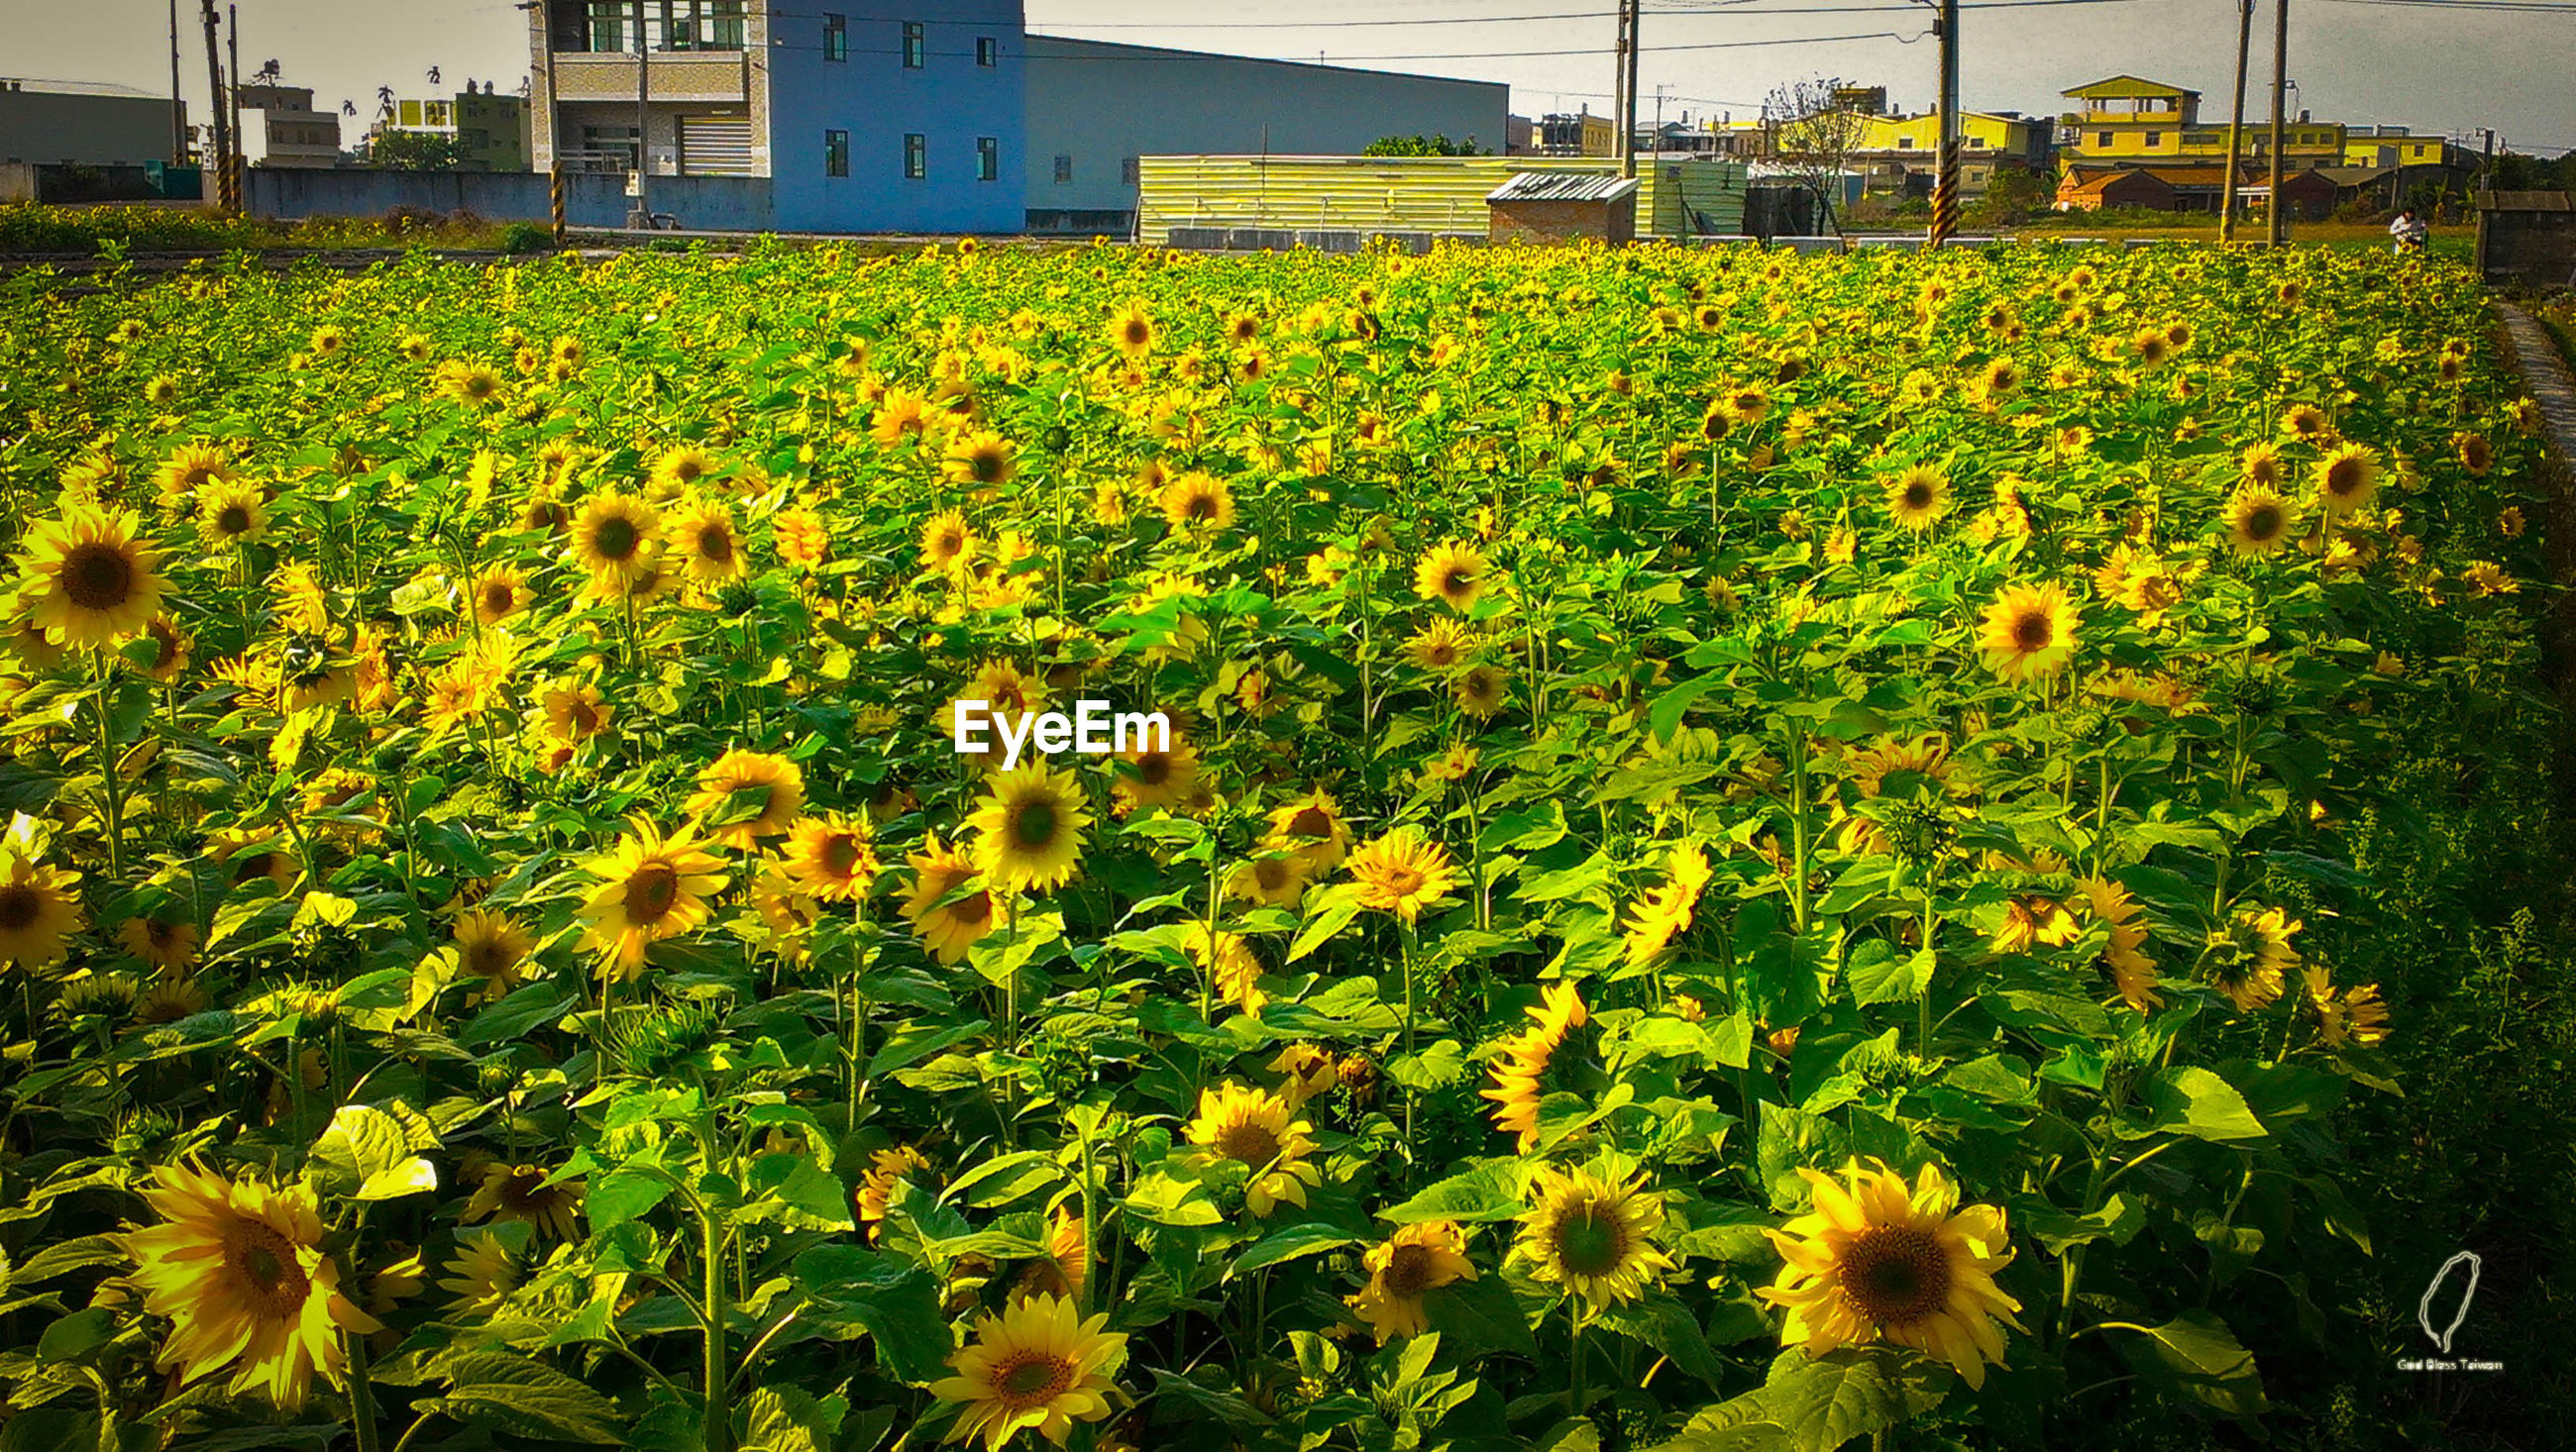 flower, yellow, freshness, growth, agriculture, field, beauty in nature, fragility, rural scene, plant, nature, farm, abundance, blooming, oilseed rape, sunflower, crop, in bloom, flower head, petal